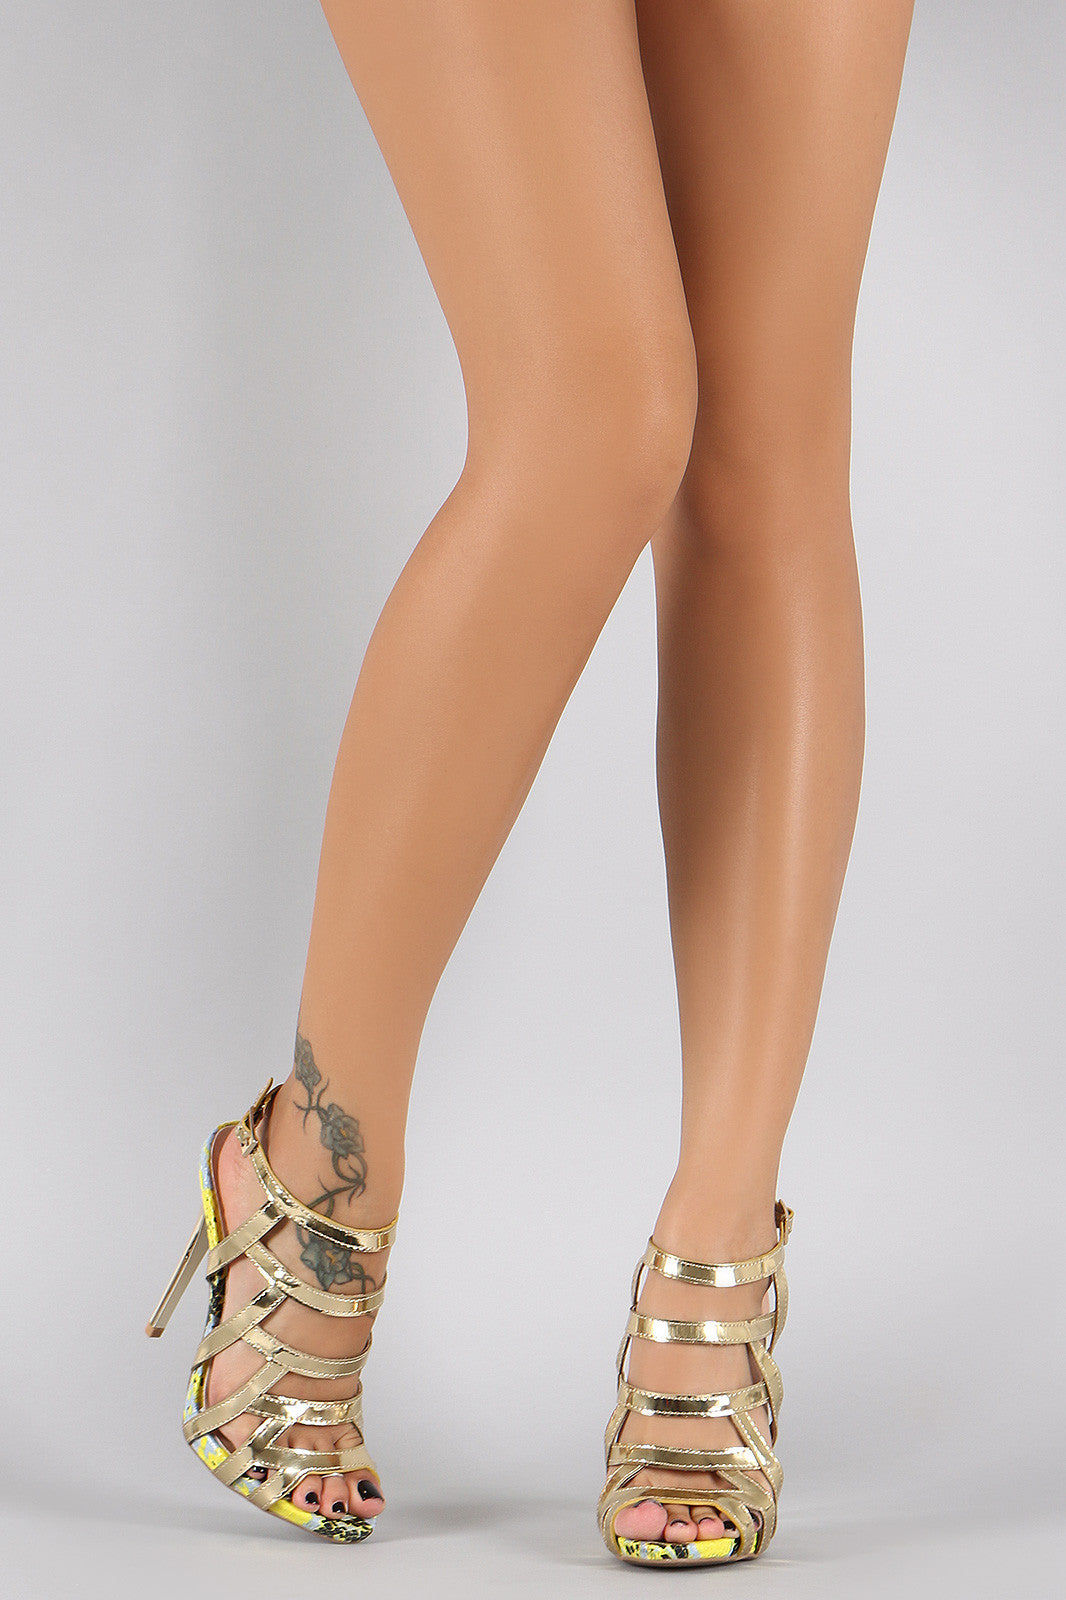 Qupid Metallic Strappy Snake Open Toe Stiletto Heel - Thick 'N' Curvy Shop - 3